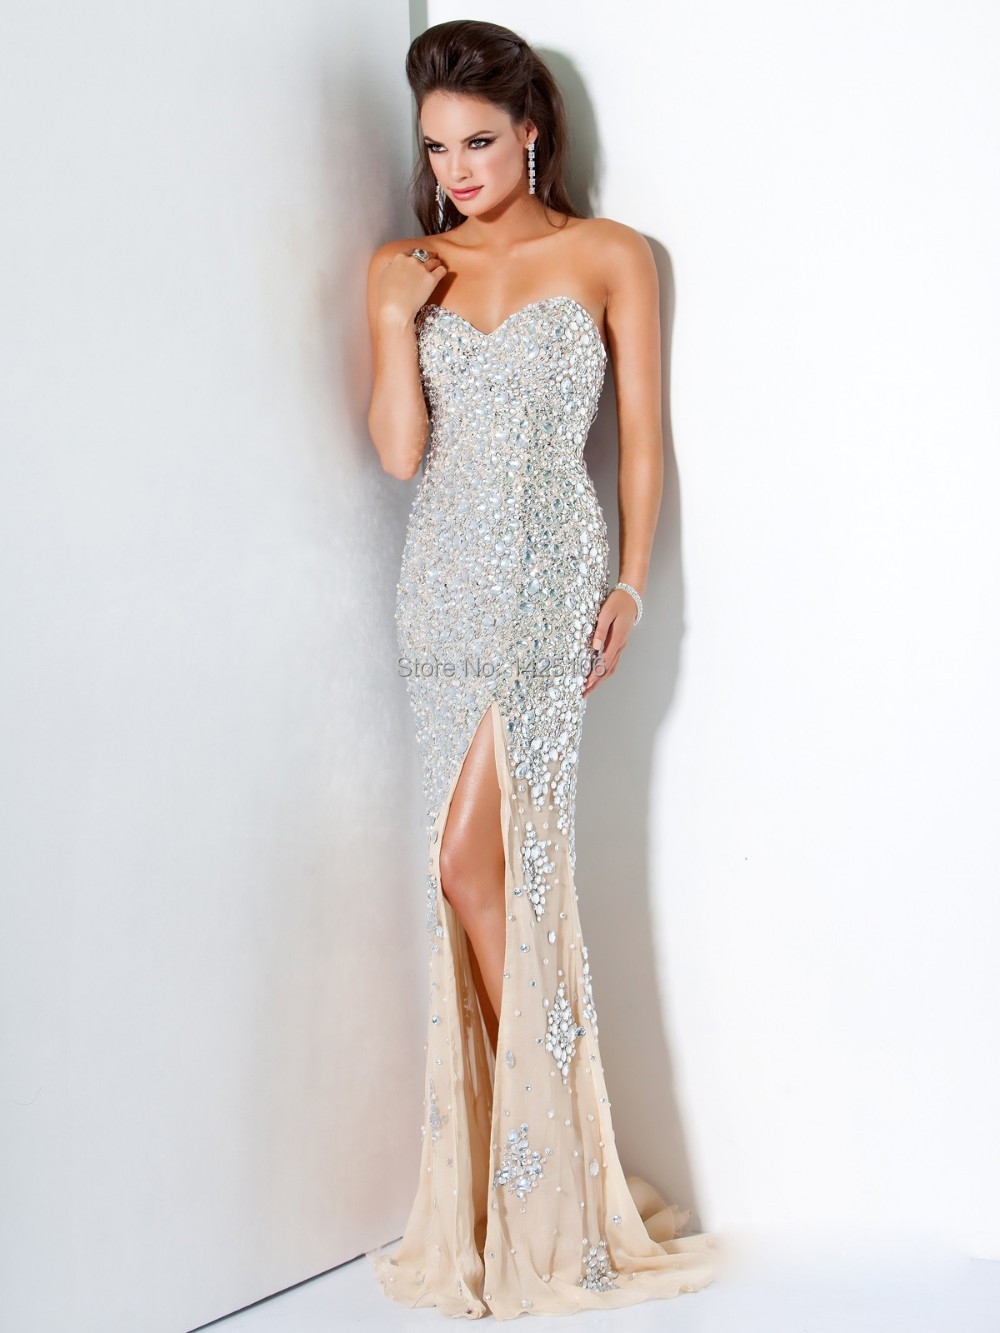 Compare Prices on Prom Dress Designs- Online Shopping/Buy Low ...